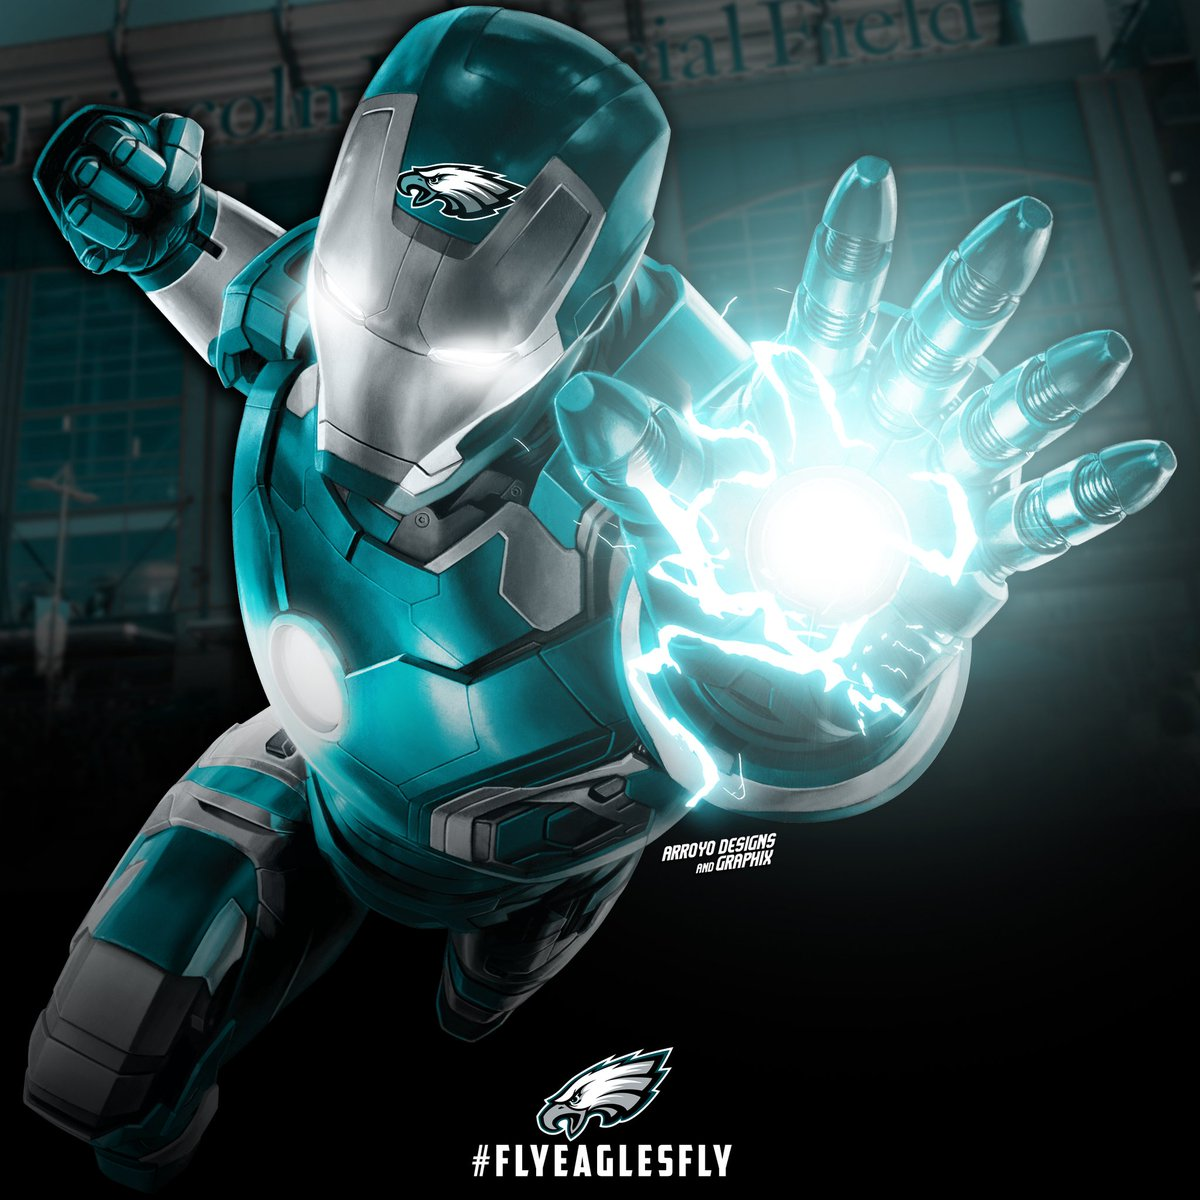 Did someone say #NFCEast? Sure did! Tweeted the NFC/AFC Qest yesterday, now its the Easts turn! #NFL100 #ProBowl2020 #IronMan #Marvel #GraphicDesign